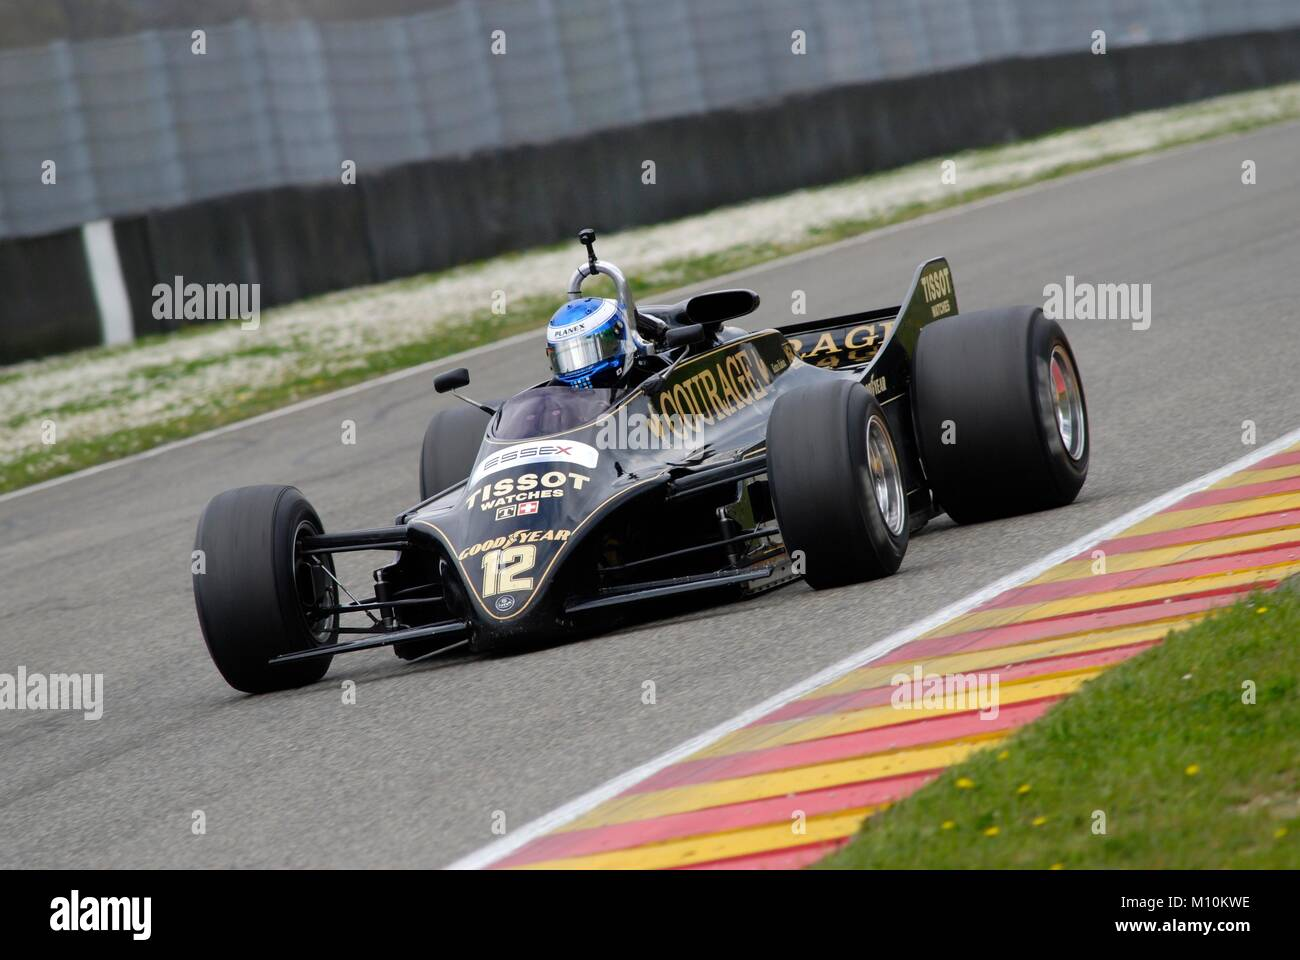 historic f1 car stock photos historic f1 car stock images page 9 alamy. Black Bedroom Furniture Sets. Home Design Ideas